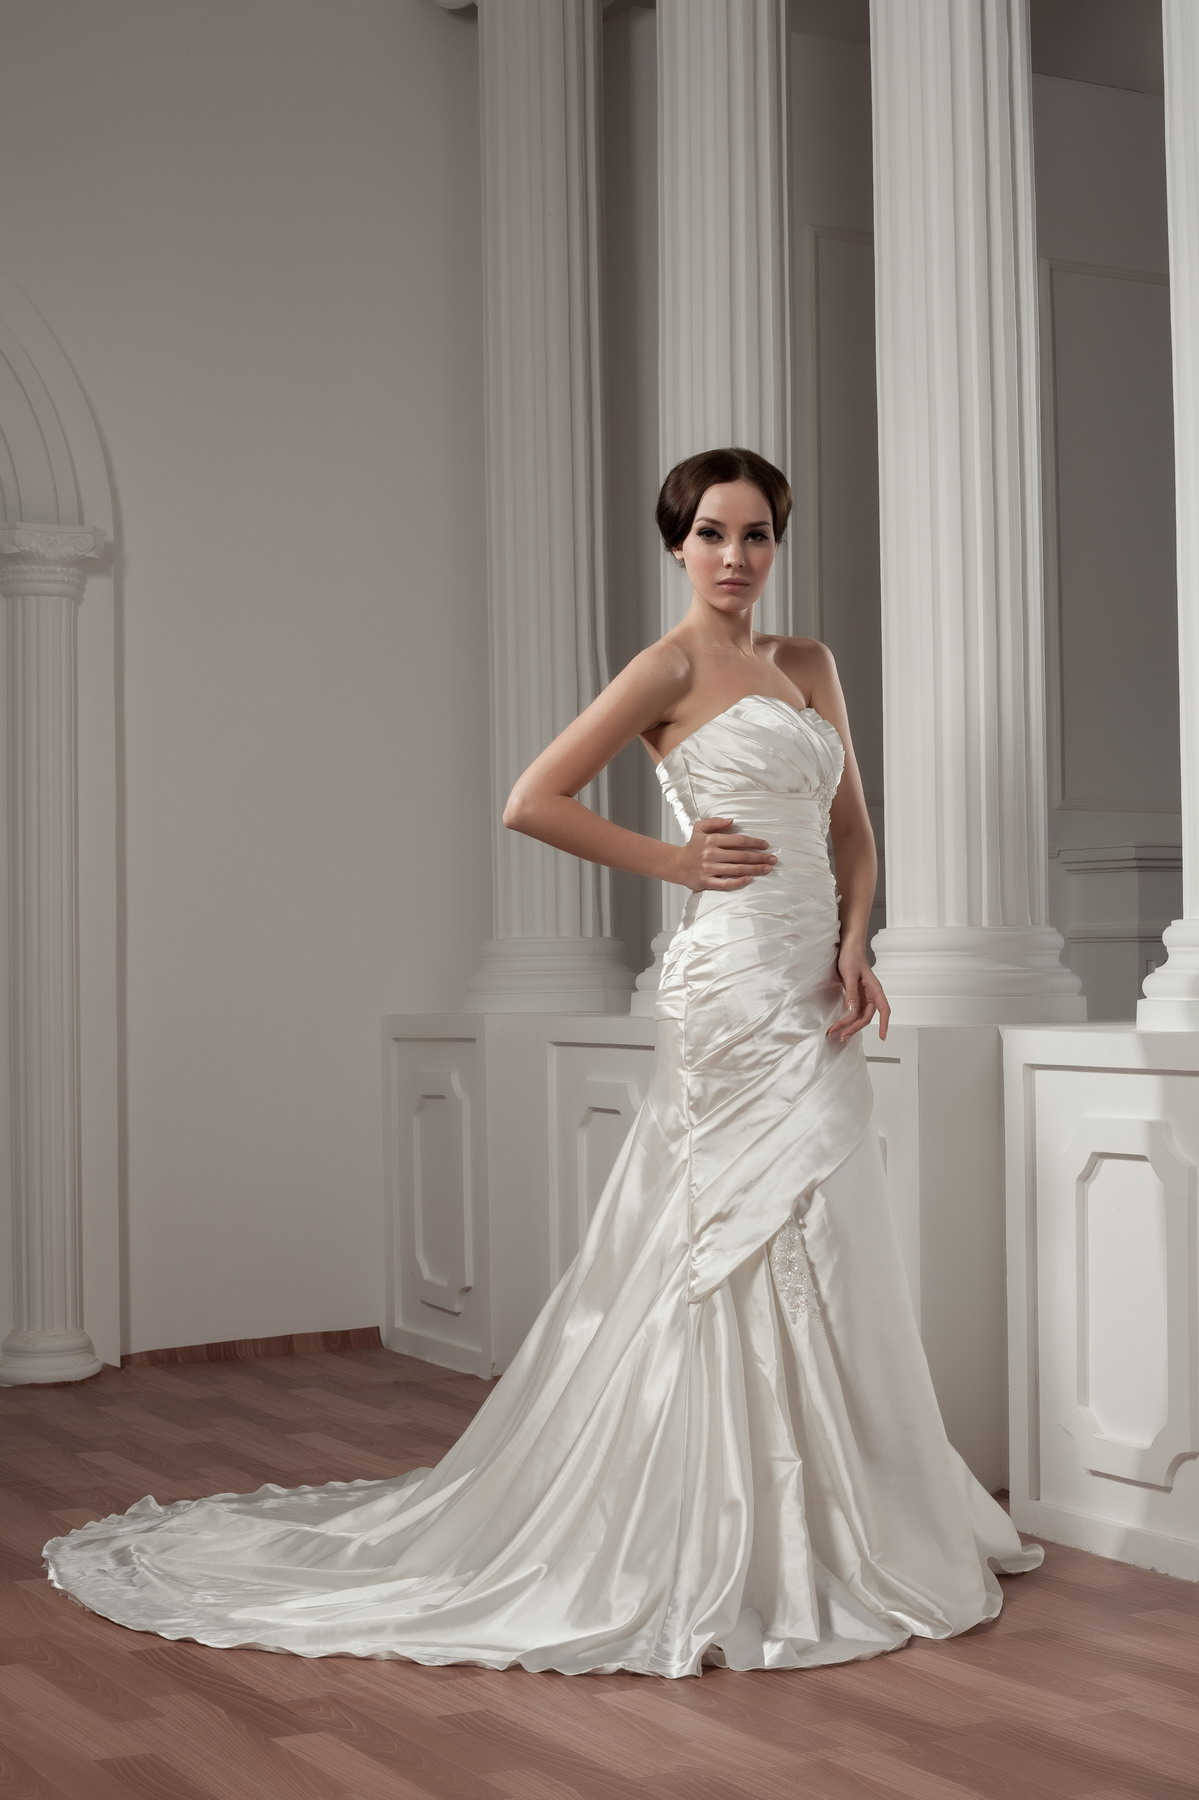 Strapless Wedding Dresses Under 200